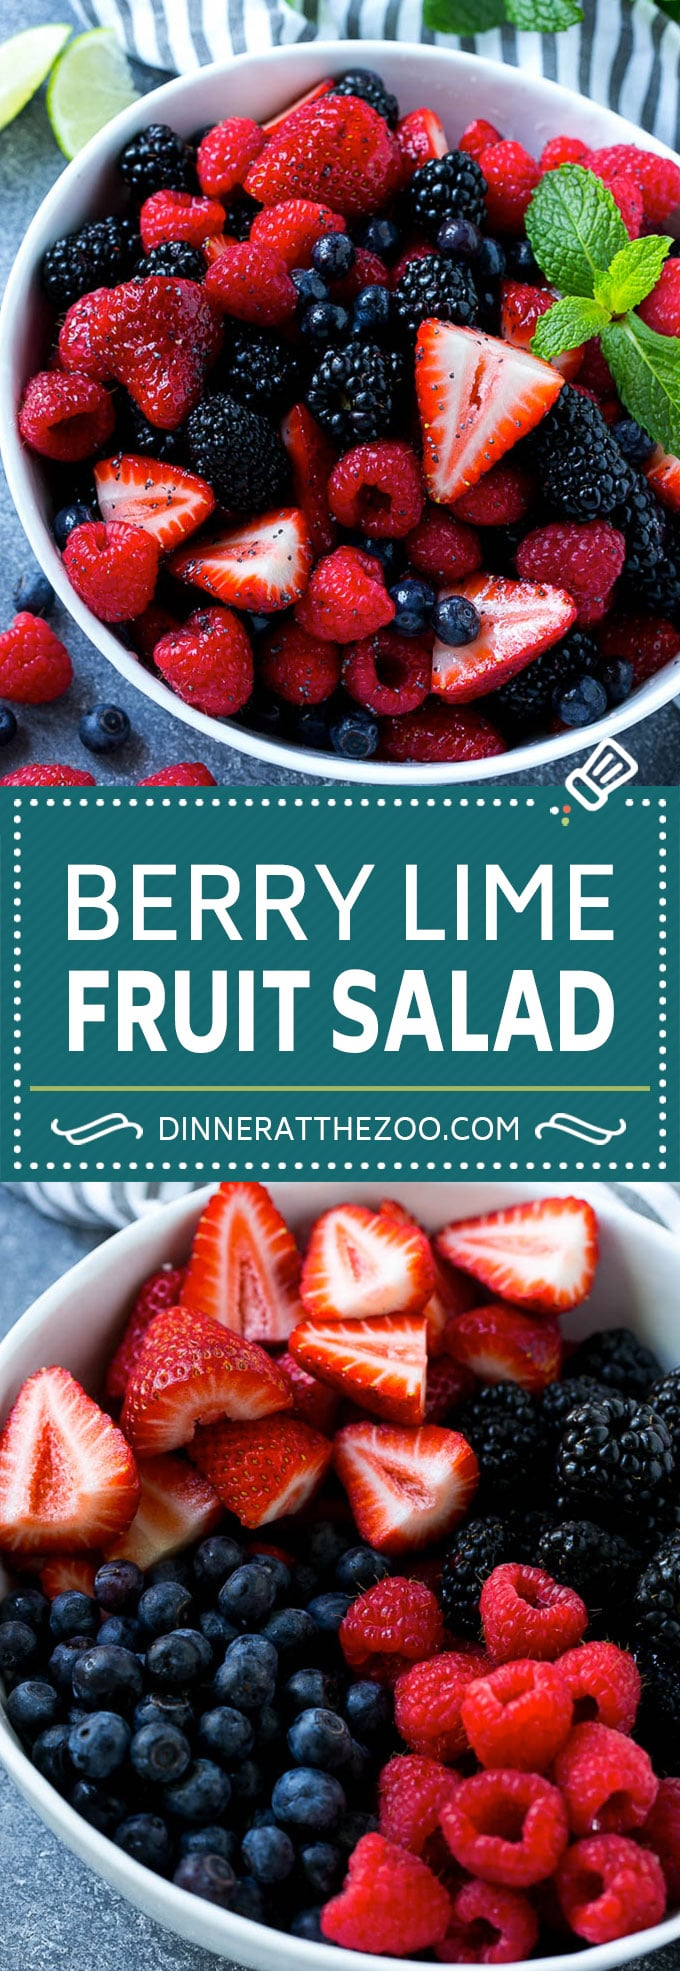 Berry Fruit Salad Recipe | Berry Salad | Summer Berry Salad | Fruit Salad Recipe #berries #fruitsalad #dinneratthezoo